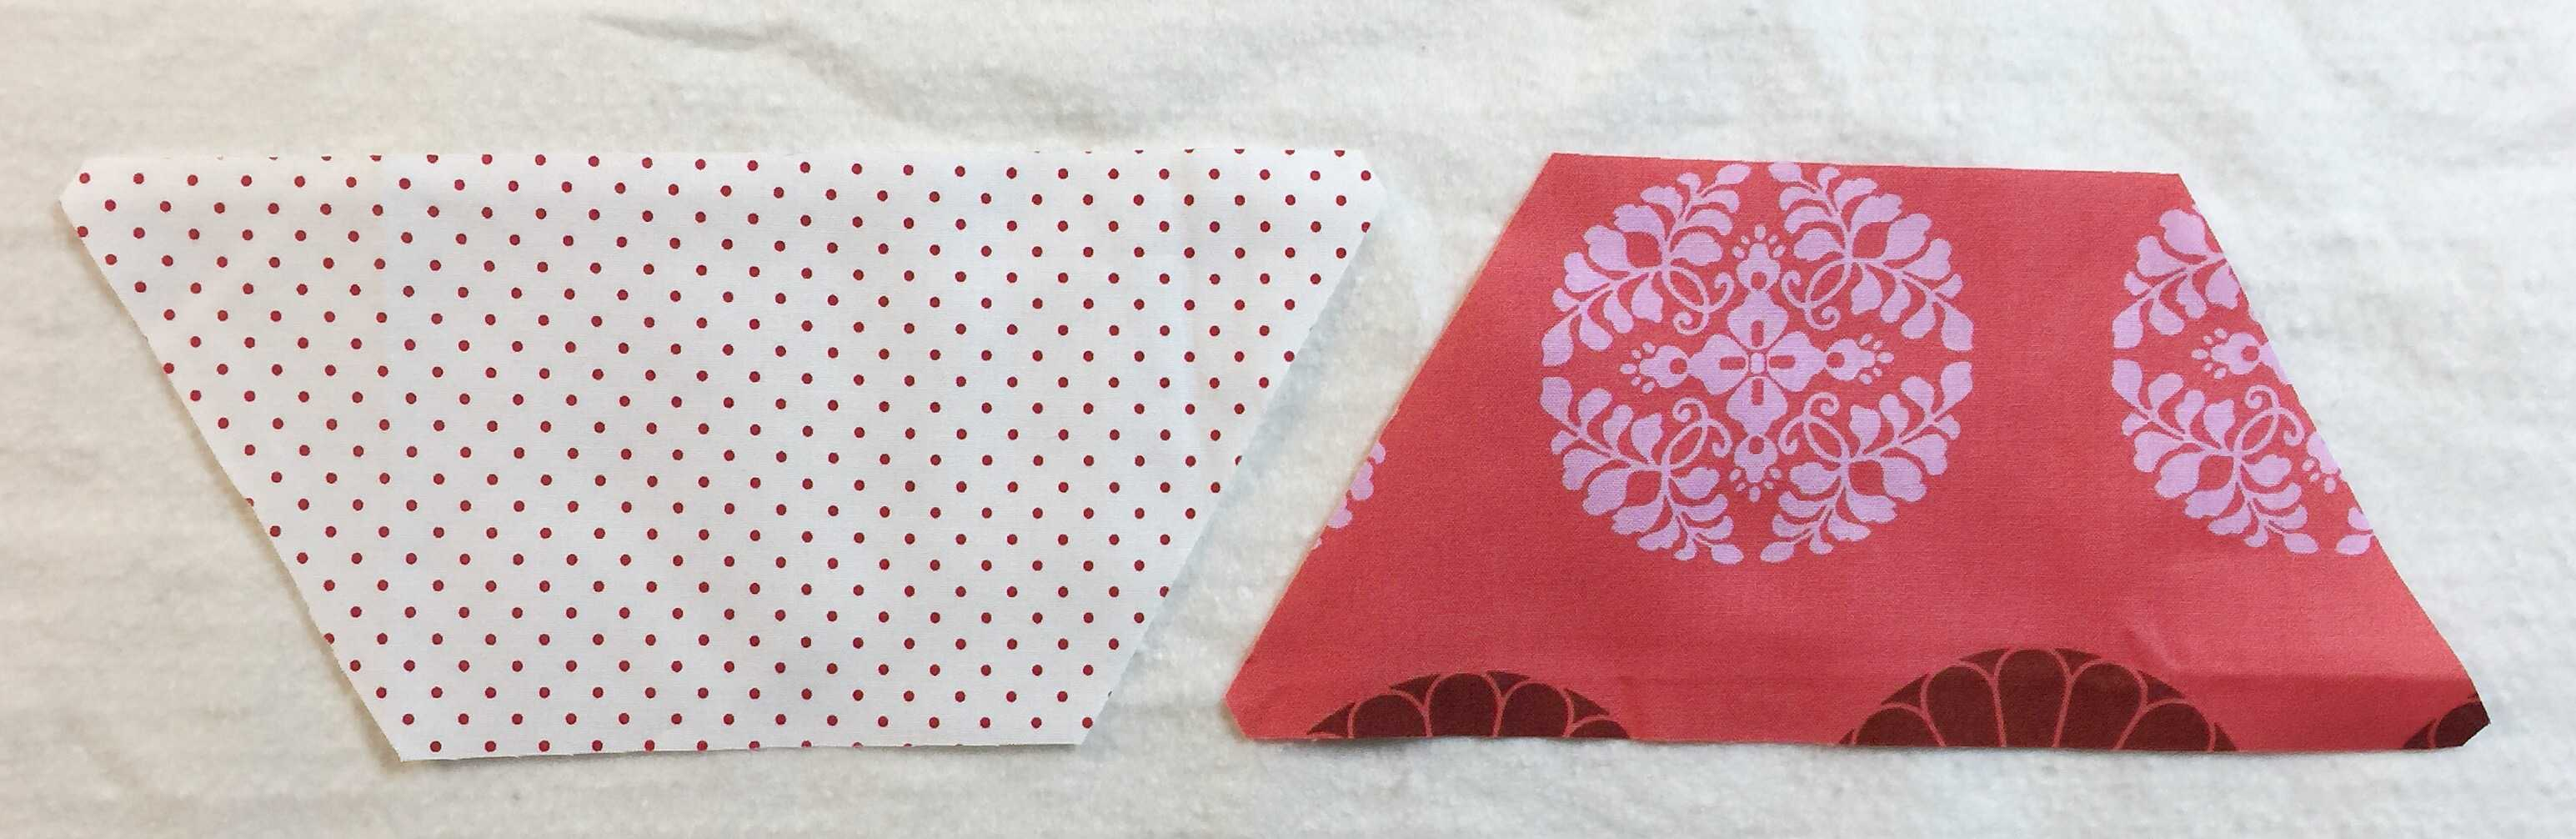 How to make a hexagon quilt with half hexies – free quilt pattern